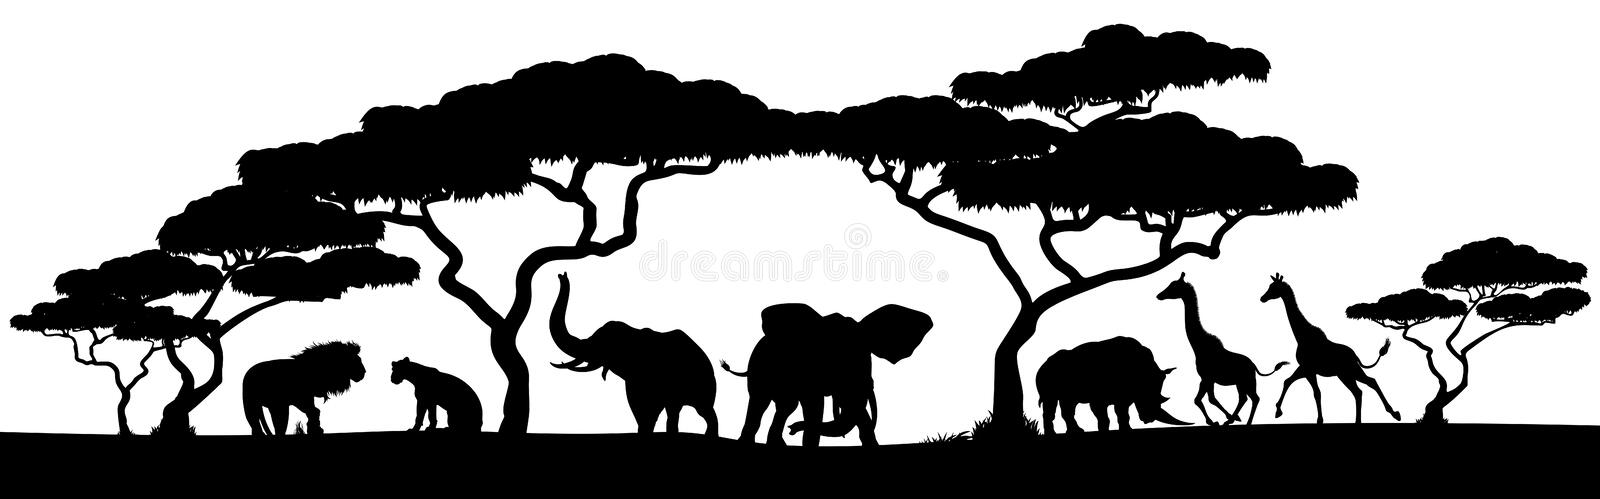 Silhouet Afrikaanse Safari Animal Landscape Scene vector illustratie